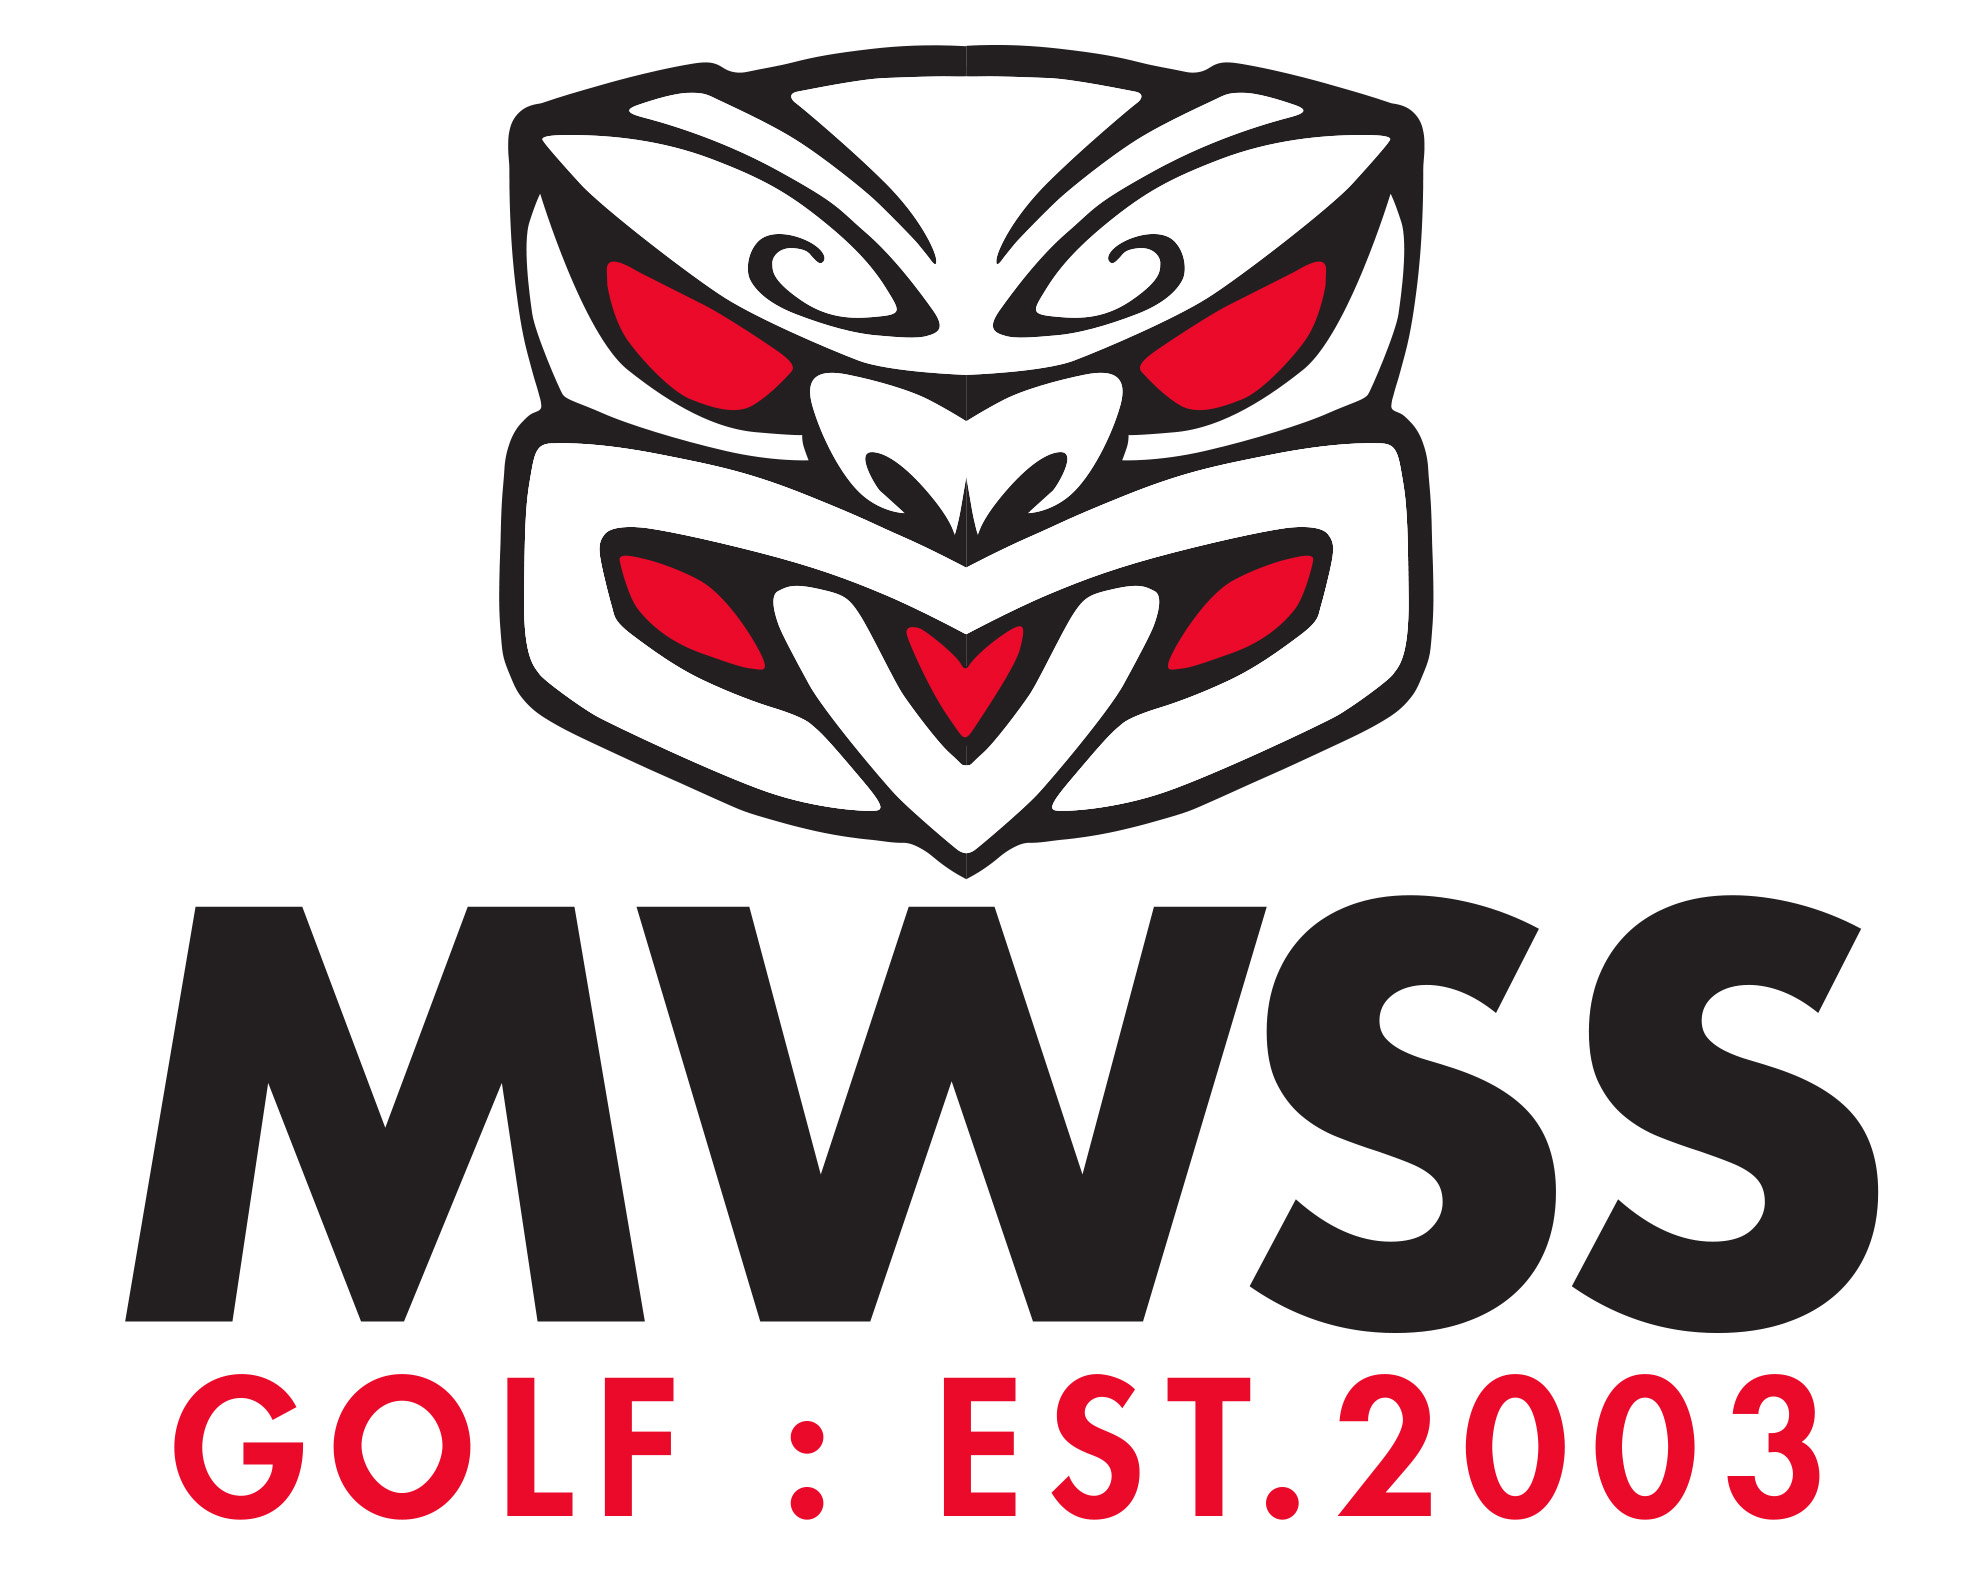 MWSS_Master_Logo_on_White